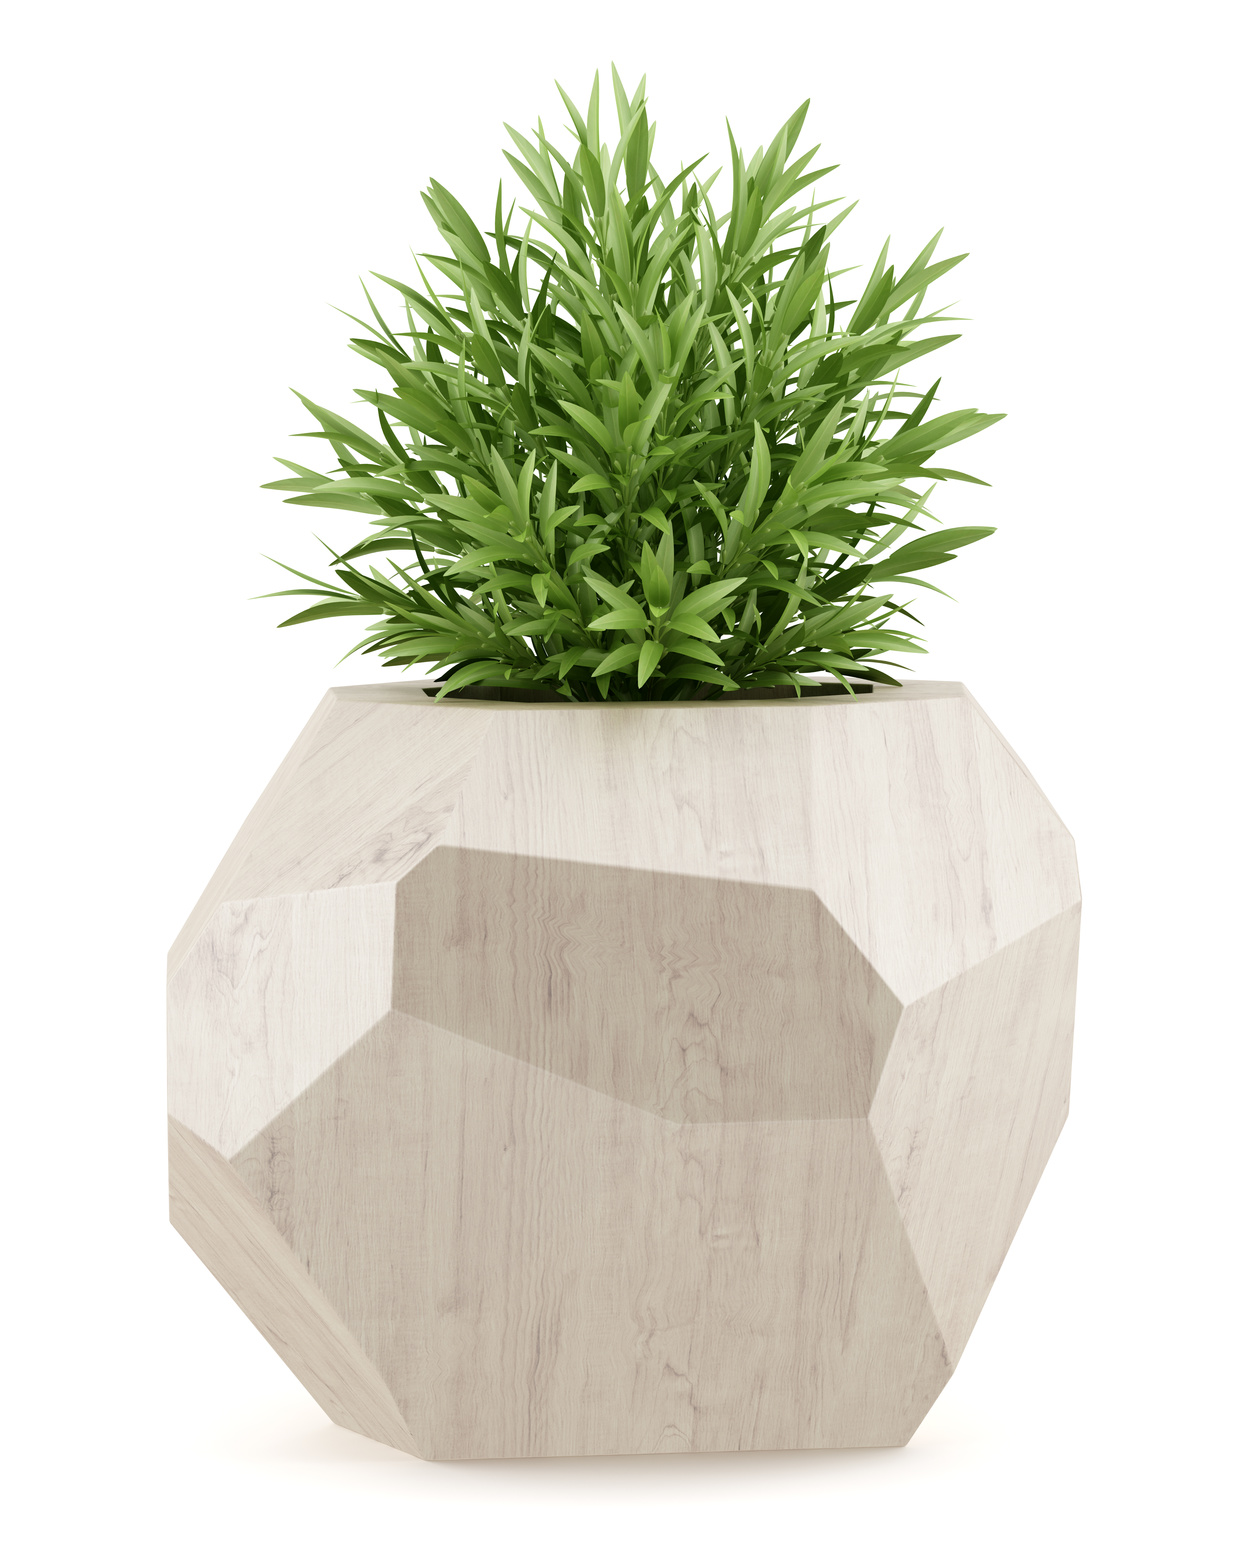 House plant in wooden pot gary 39 s garden - Seven tricks for healthier potted plants ...